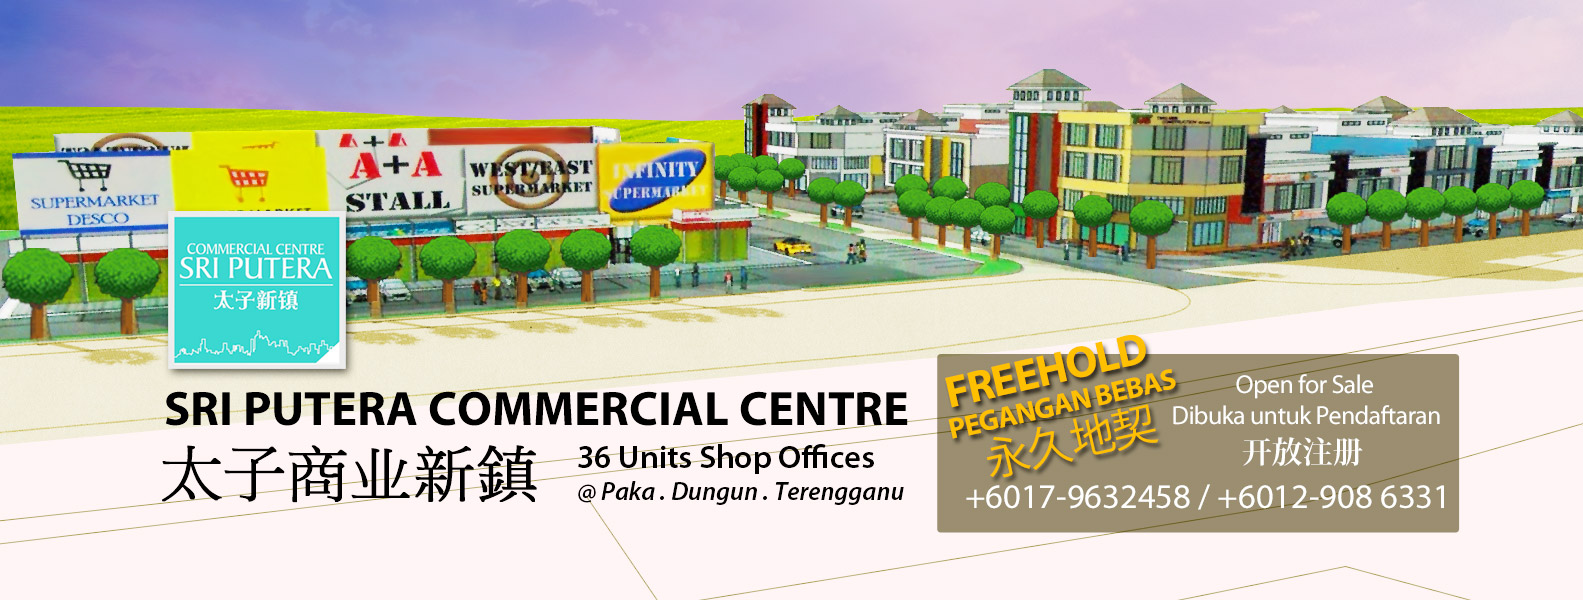 ting-mee-sri-putra-commercial-centre-2